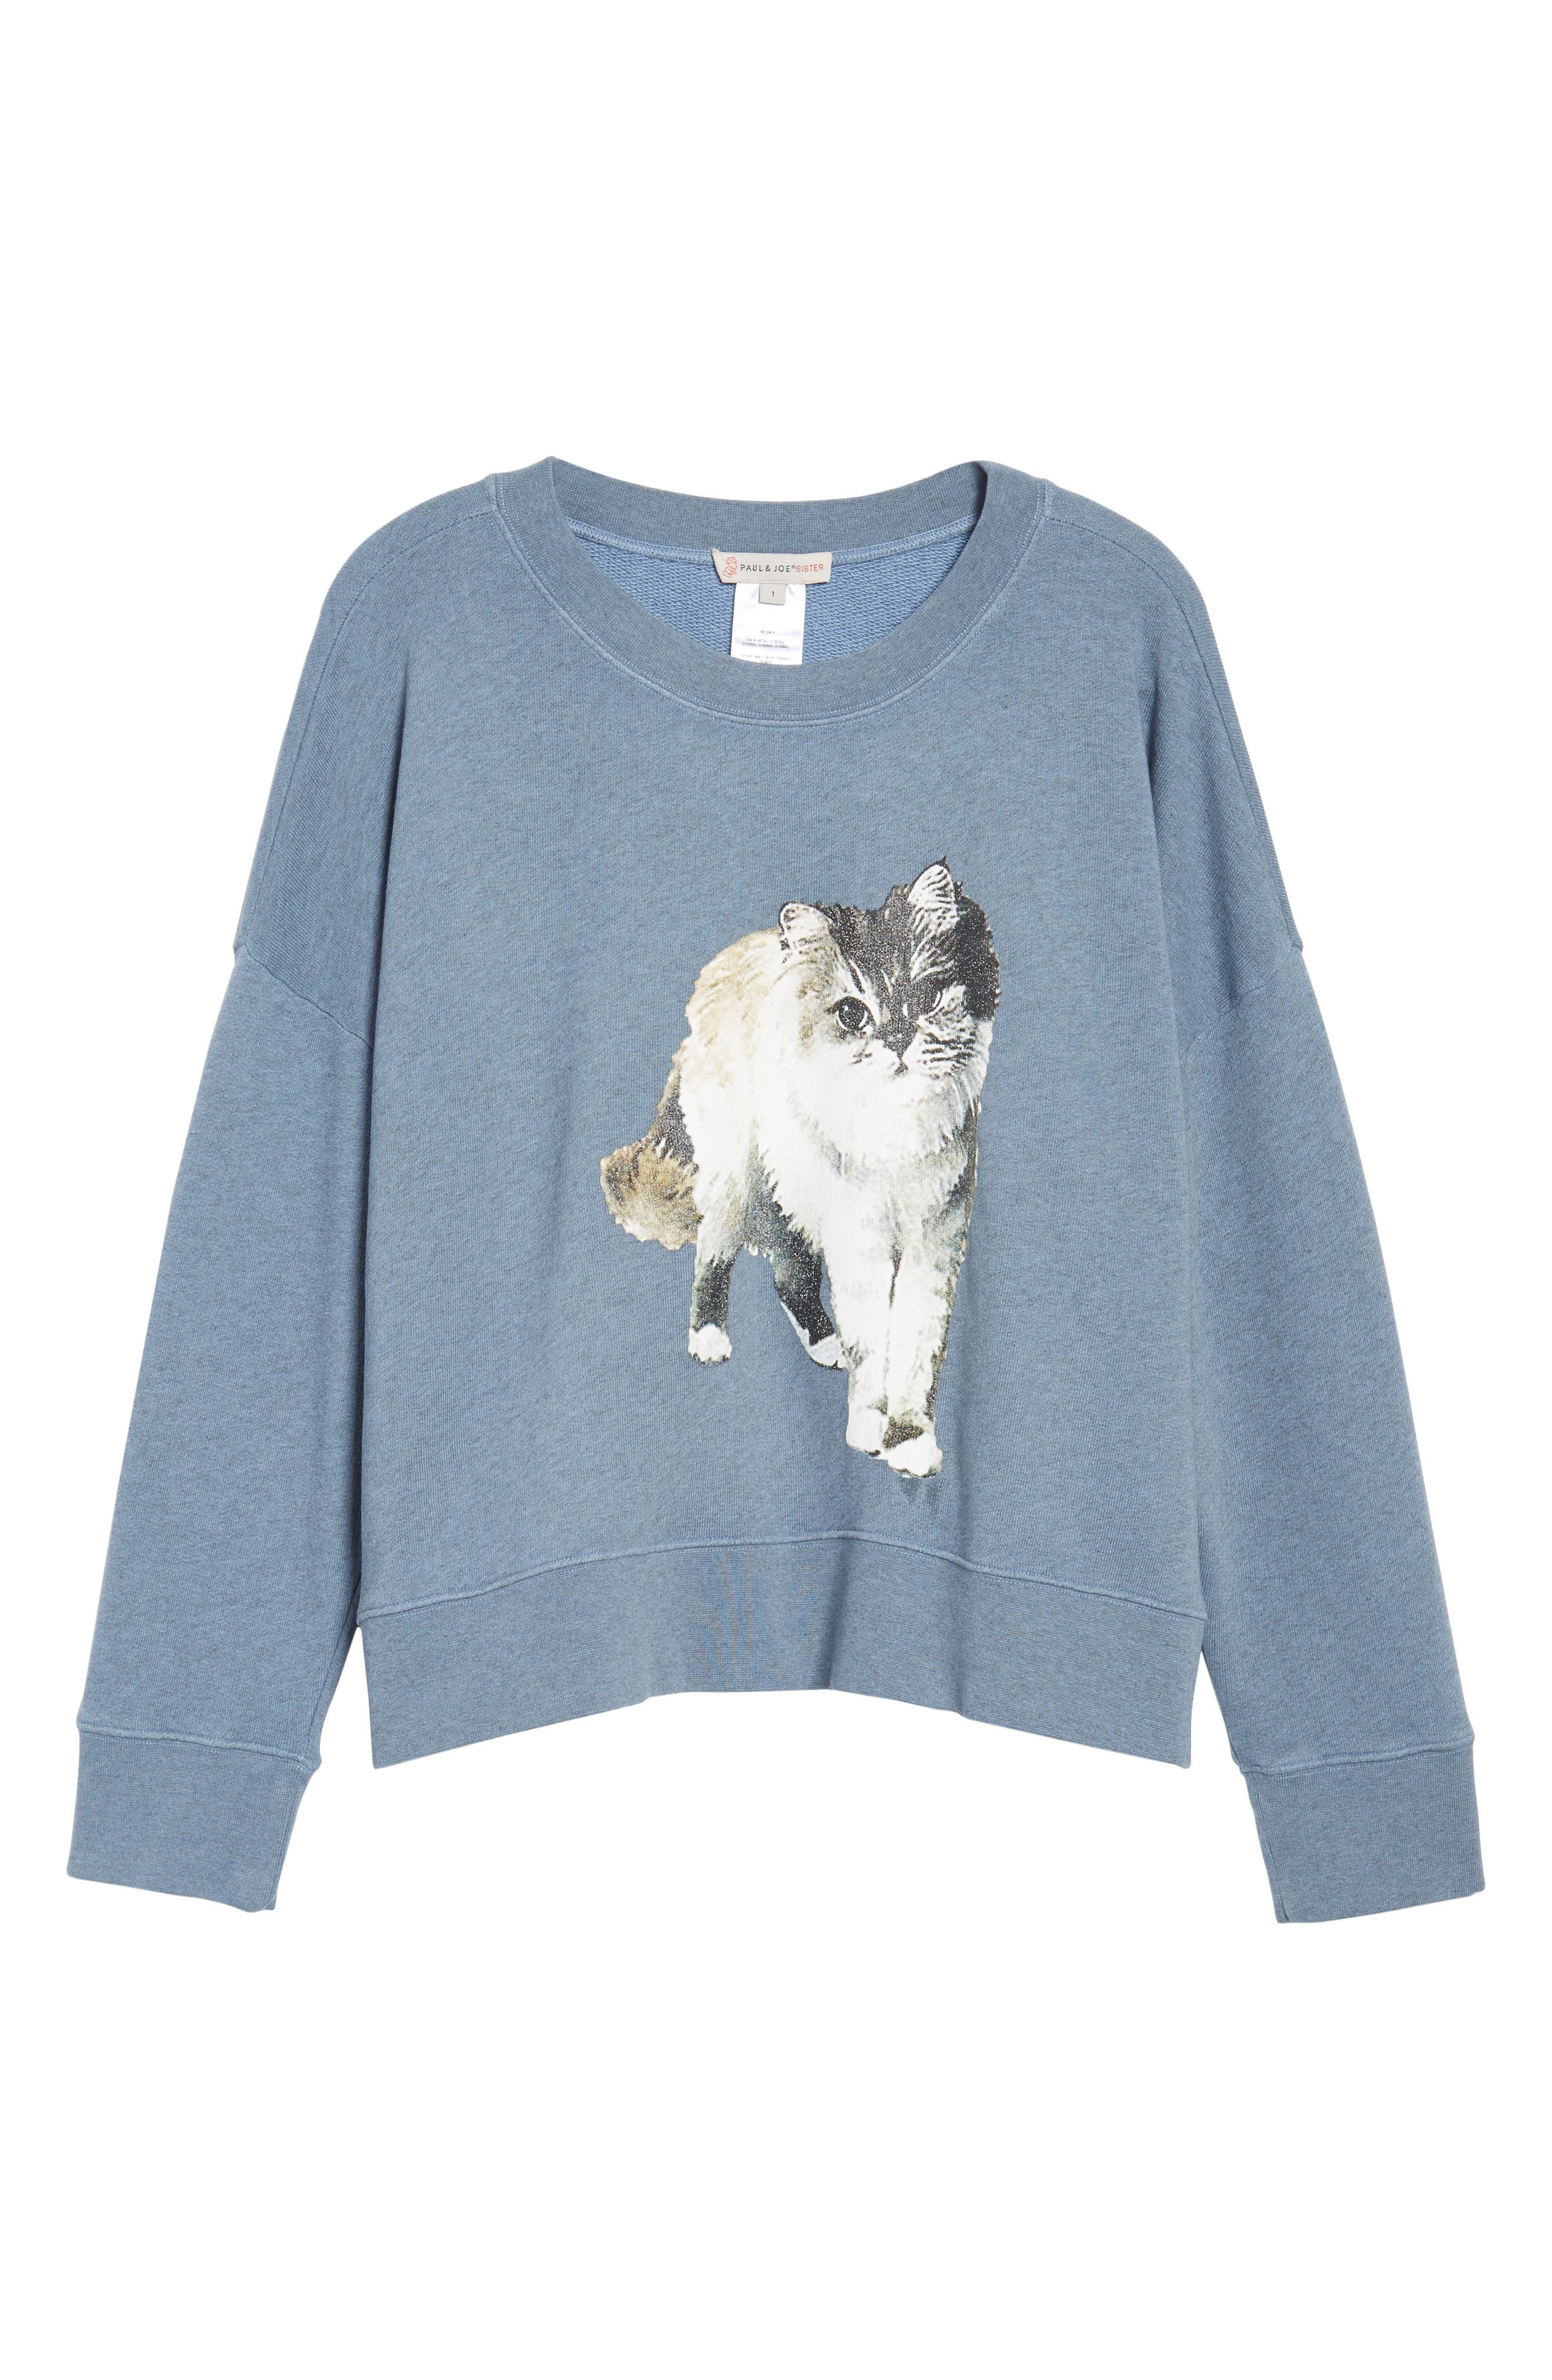 Kyoto Sweatshirt,                             Alternate thumbnail 6, color,                             Blue